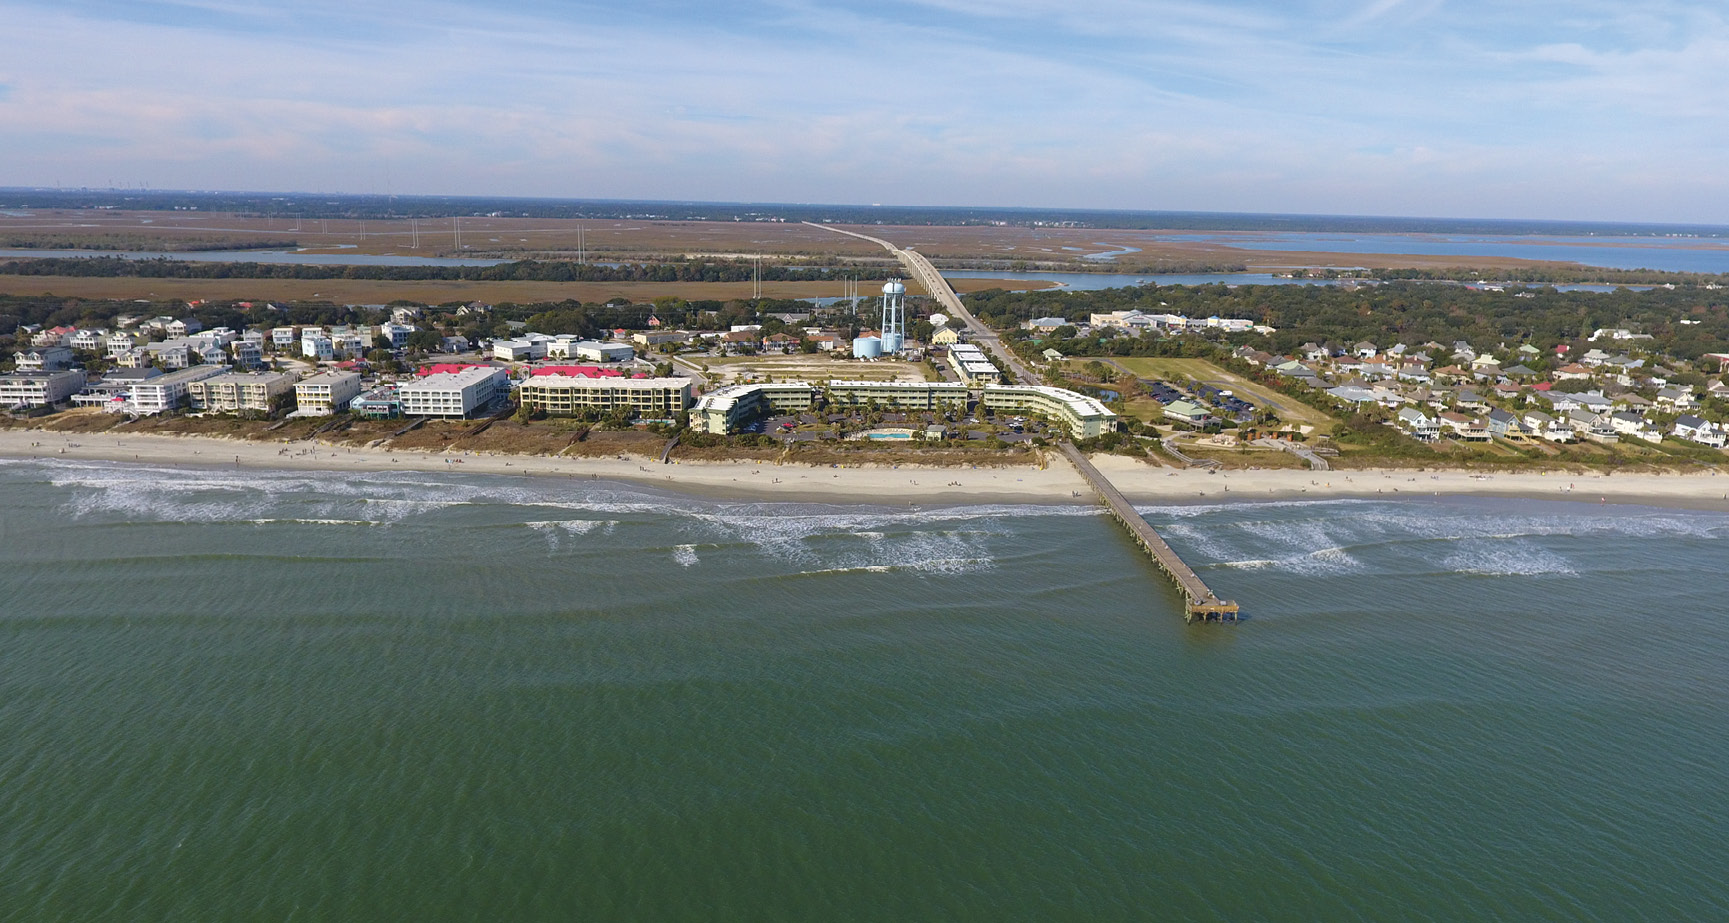 Front Beach Isle of Palms and the pier in 2017